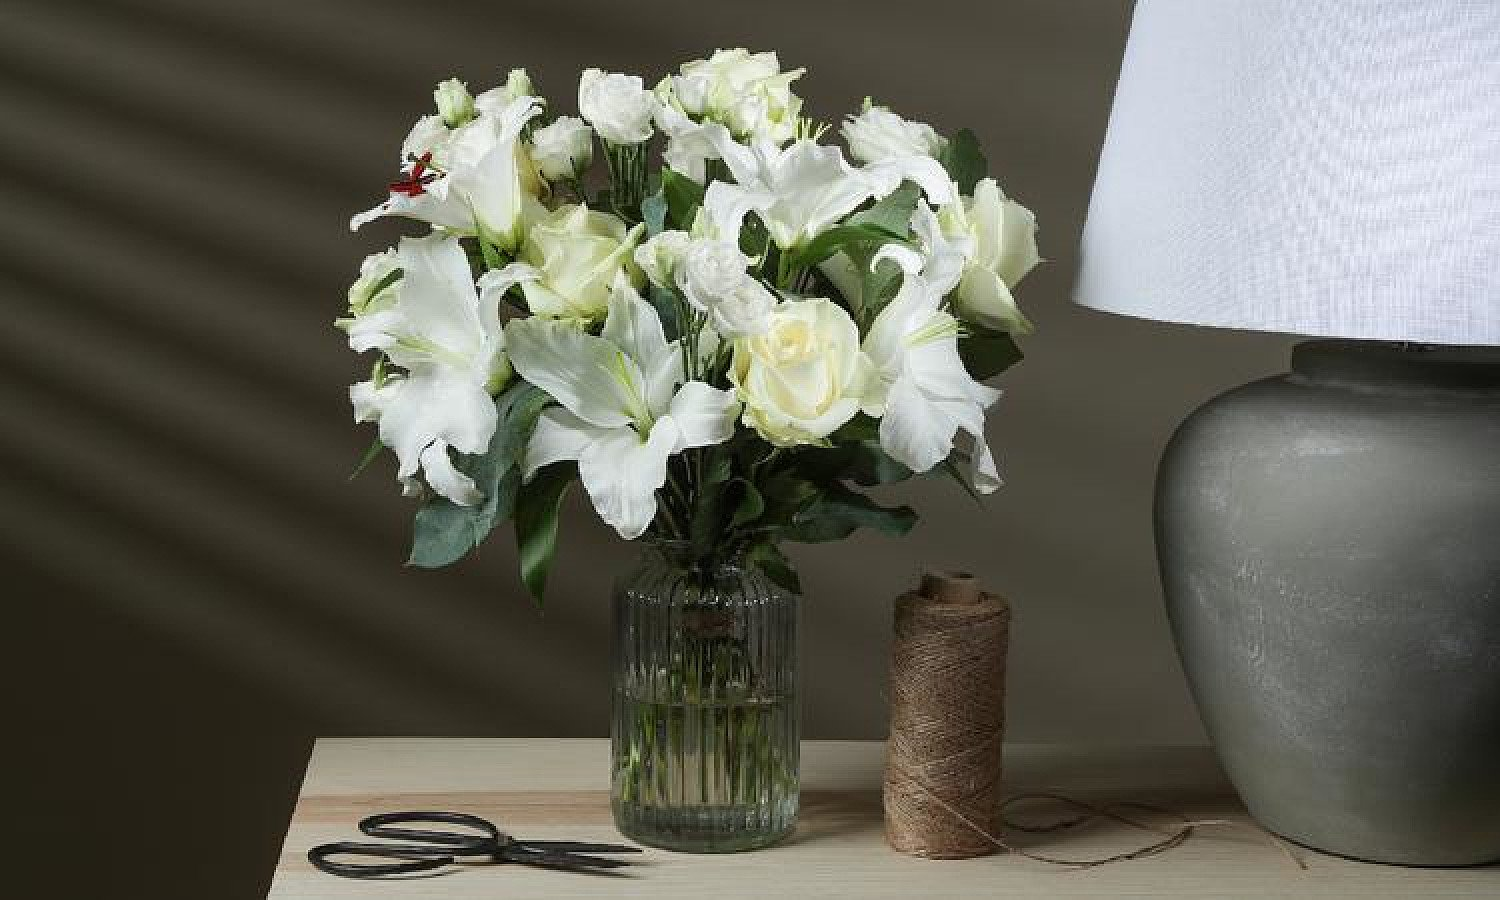 HAND-TIED BOUQUETS BY EXPERT FLORISTS - THE SERENITY £29.98 + Delivery!